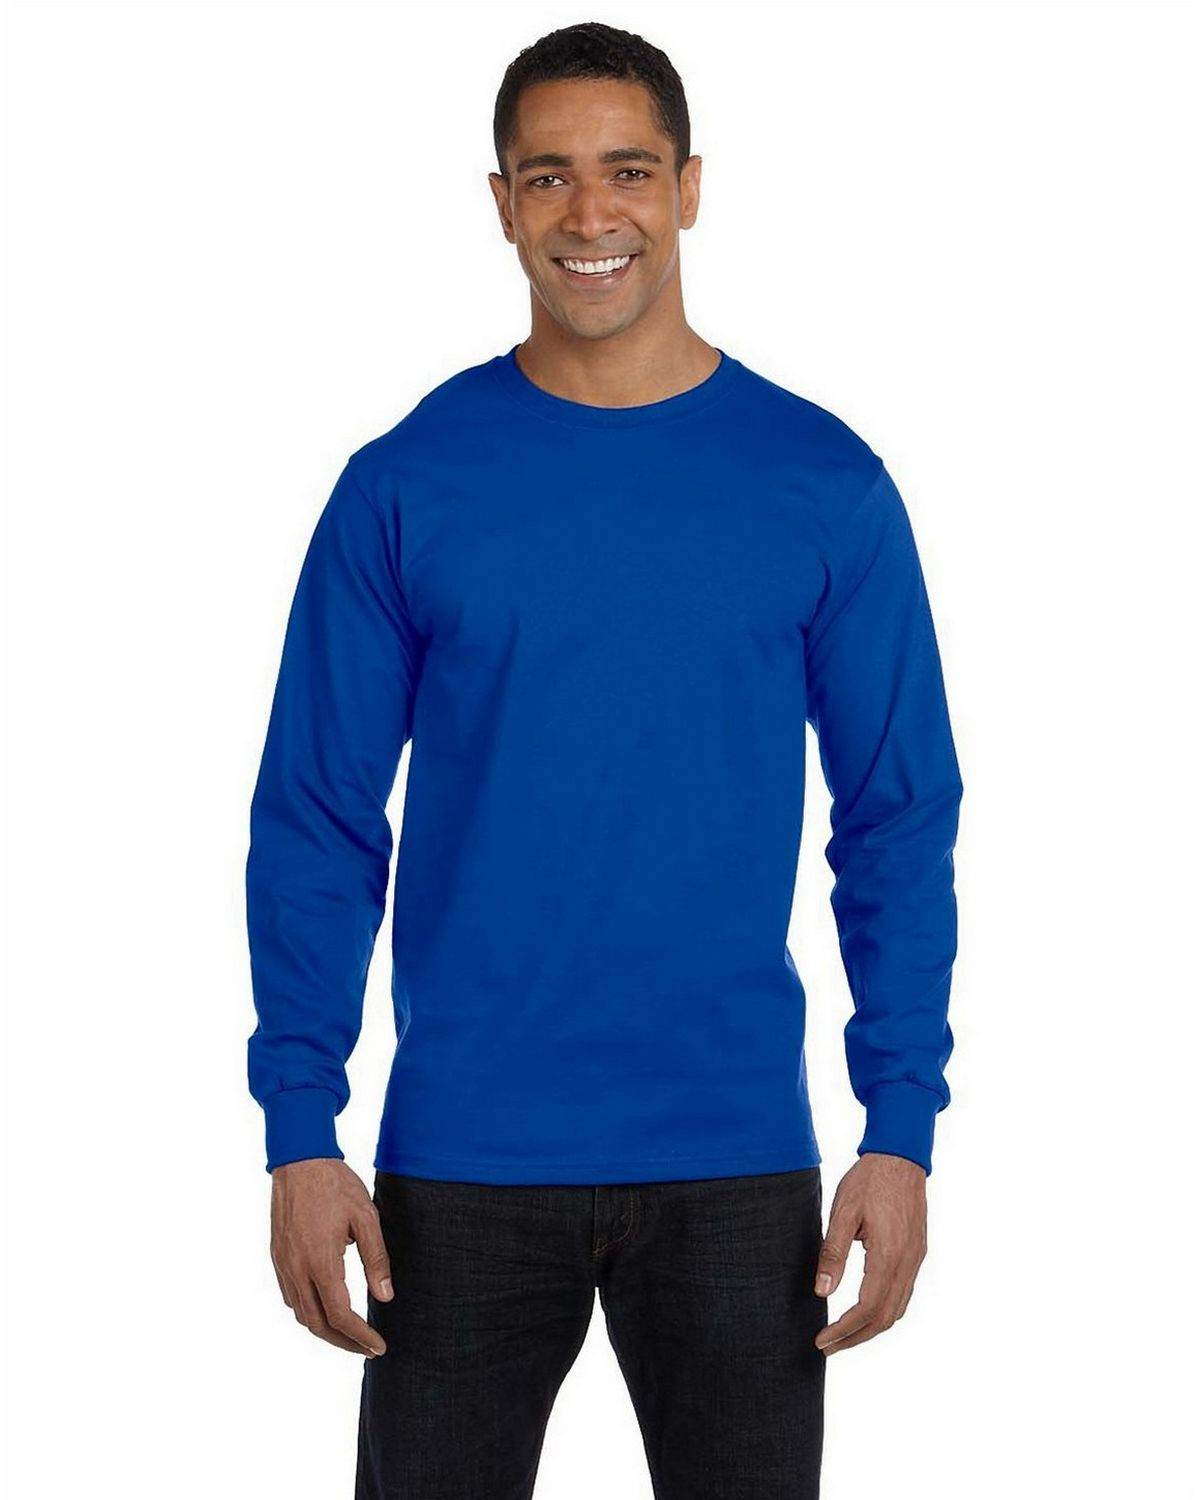 Gildan G8400 Long Sleeve Tee - Royal - M G8400